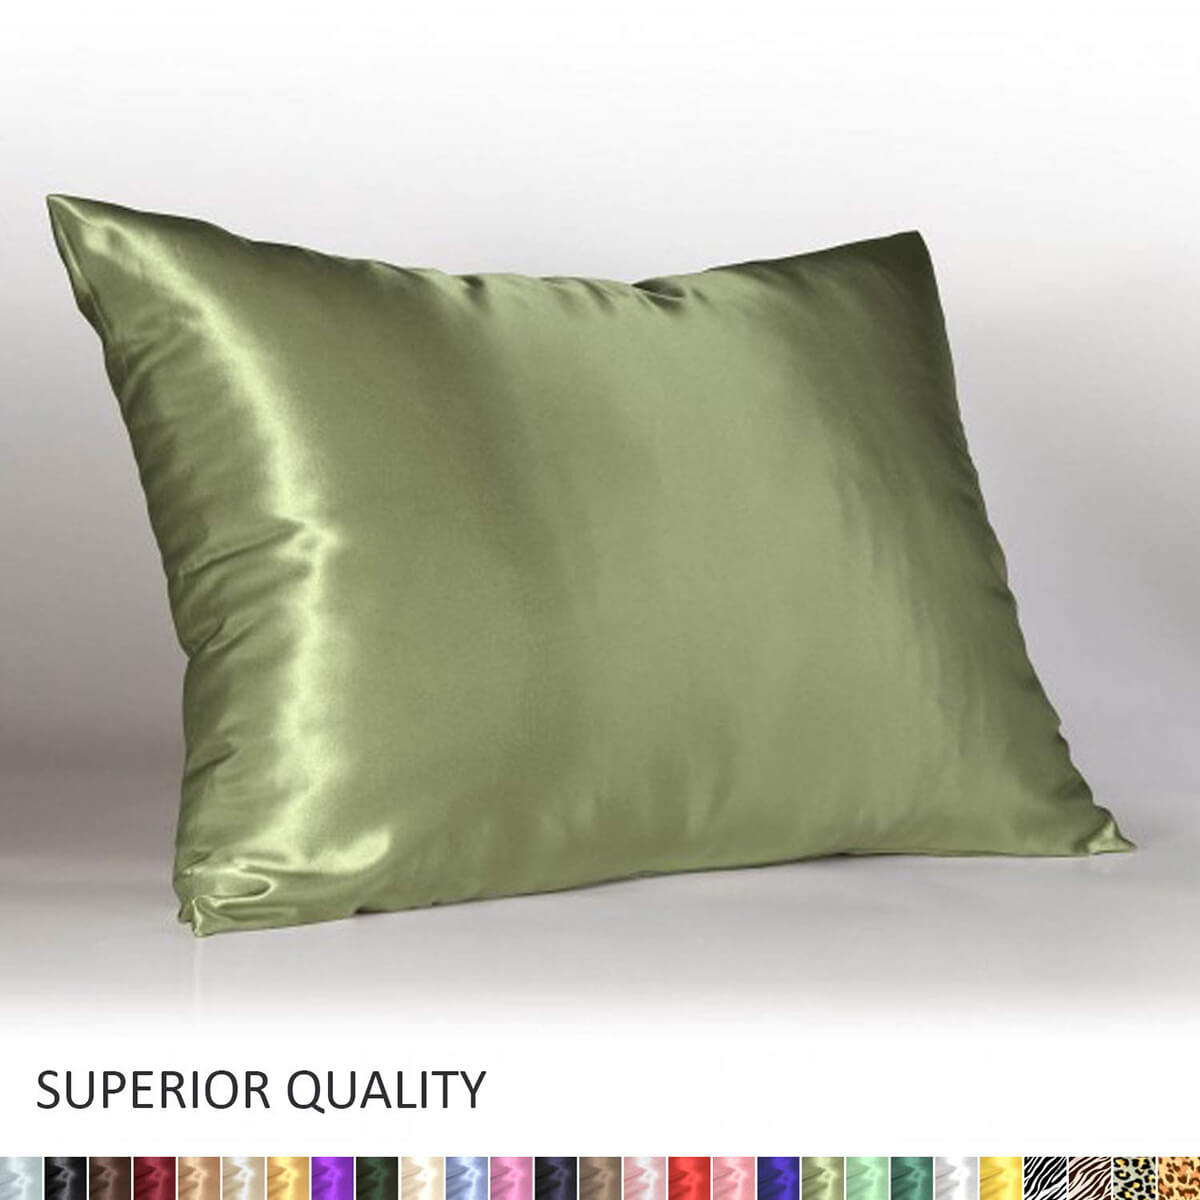 A Luxury Pillowcase at an Affordable Rate